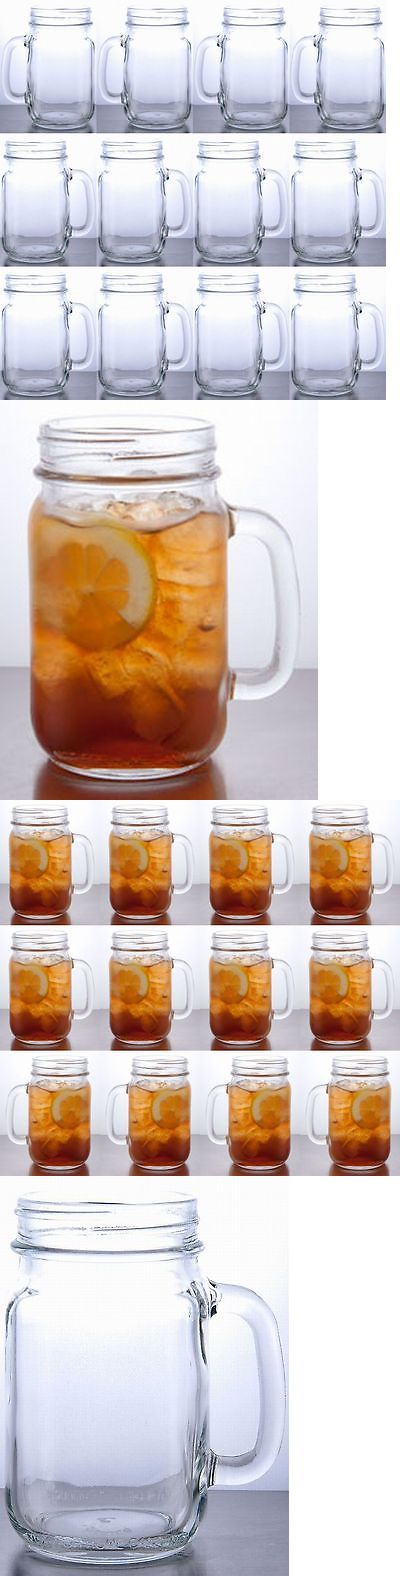 Wedding Supplies 51018: Rustic Bridal Wedding Mason Jars With Handles Wholesale Lot Set 5 Cases 60 Jars -> BUY IT NOW ONLY: $149.95 on eBay!